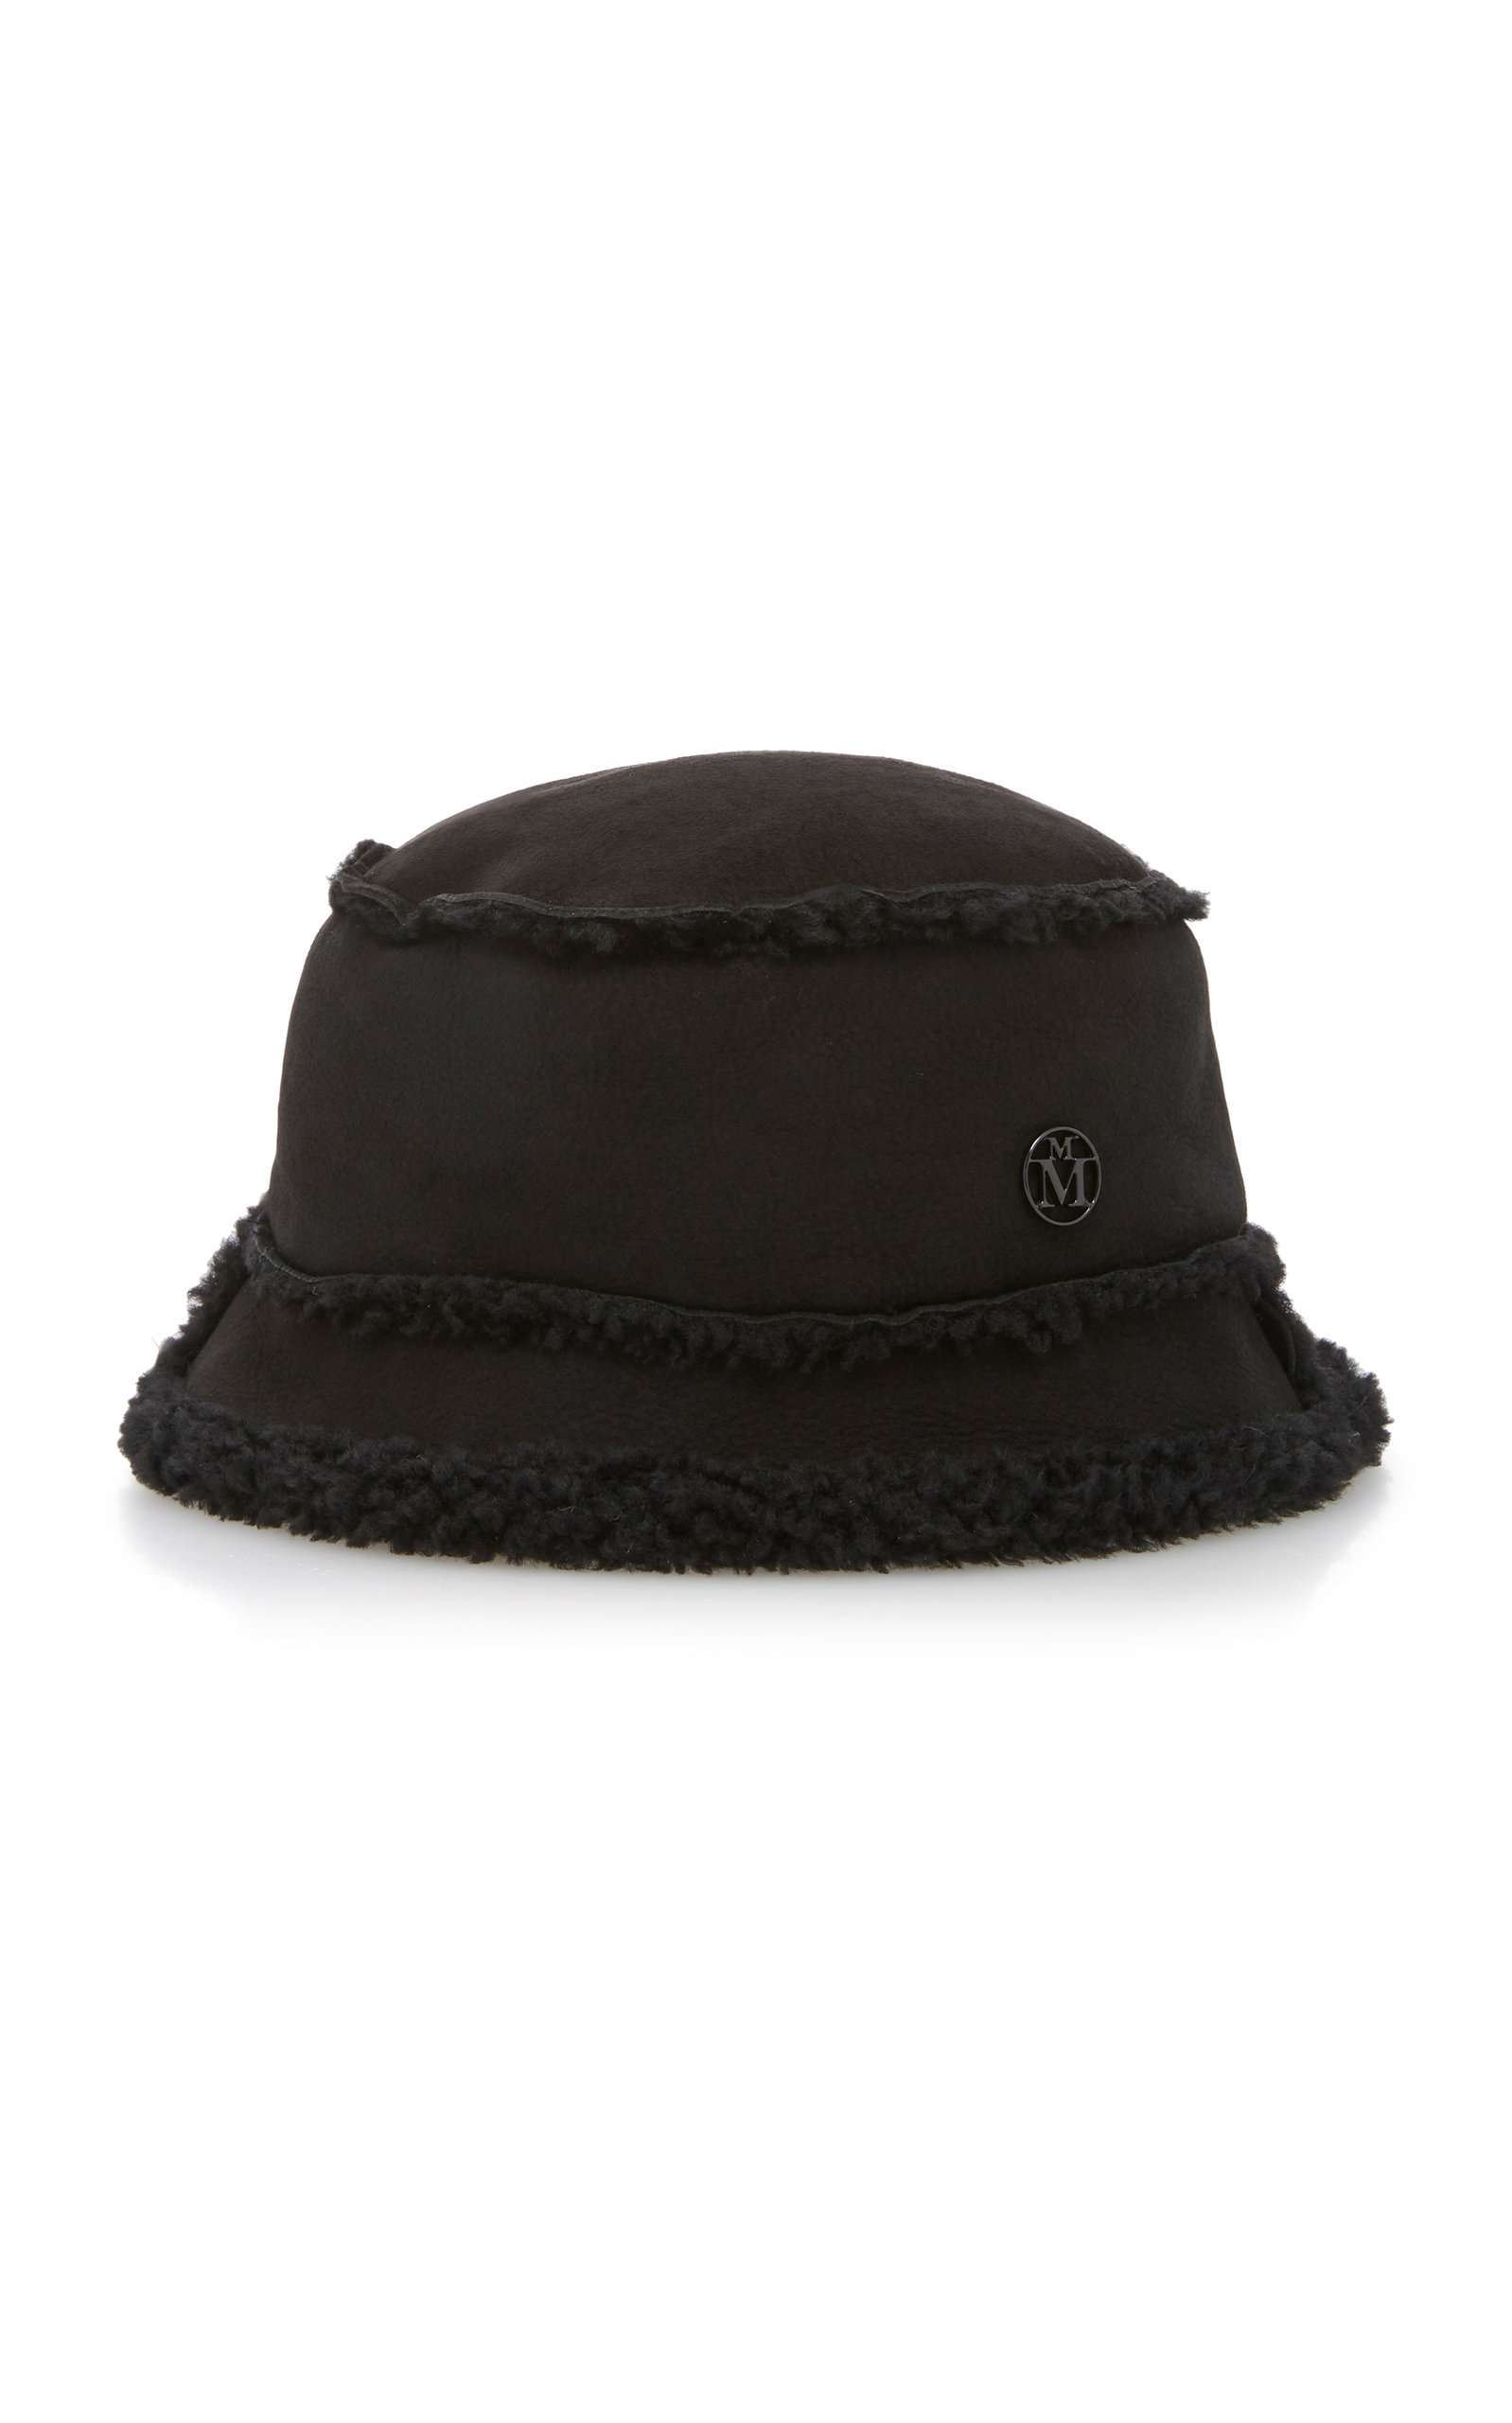 Maison Michel Hats Malo Shearling Bucket Hat